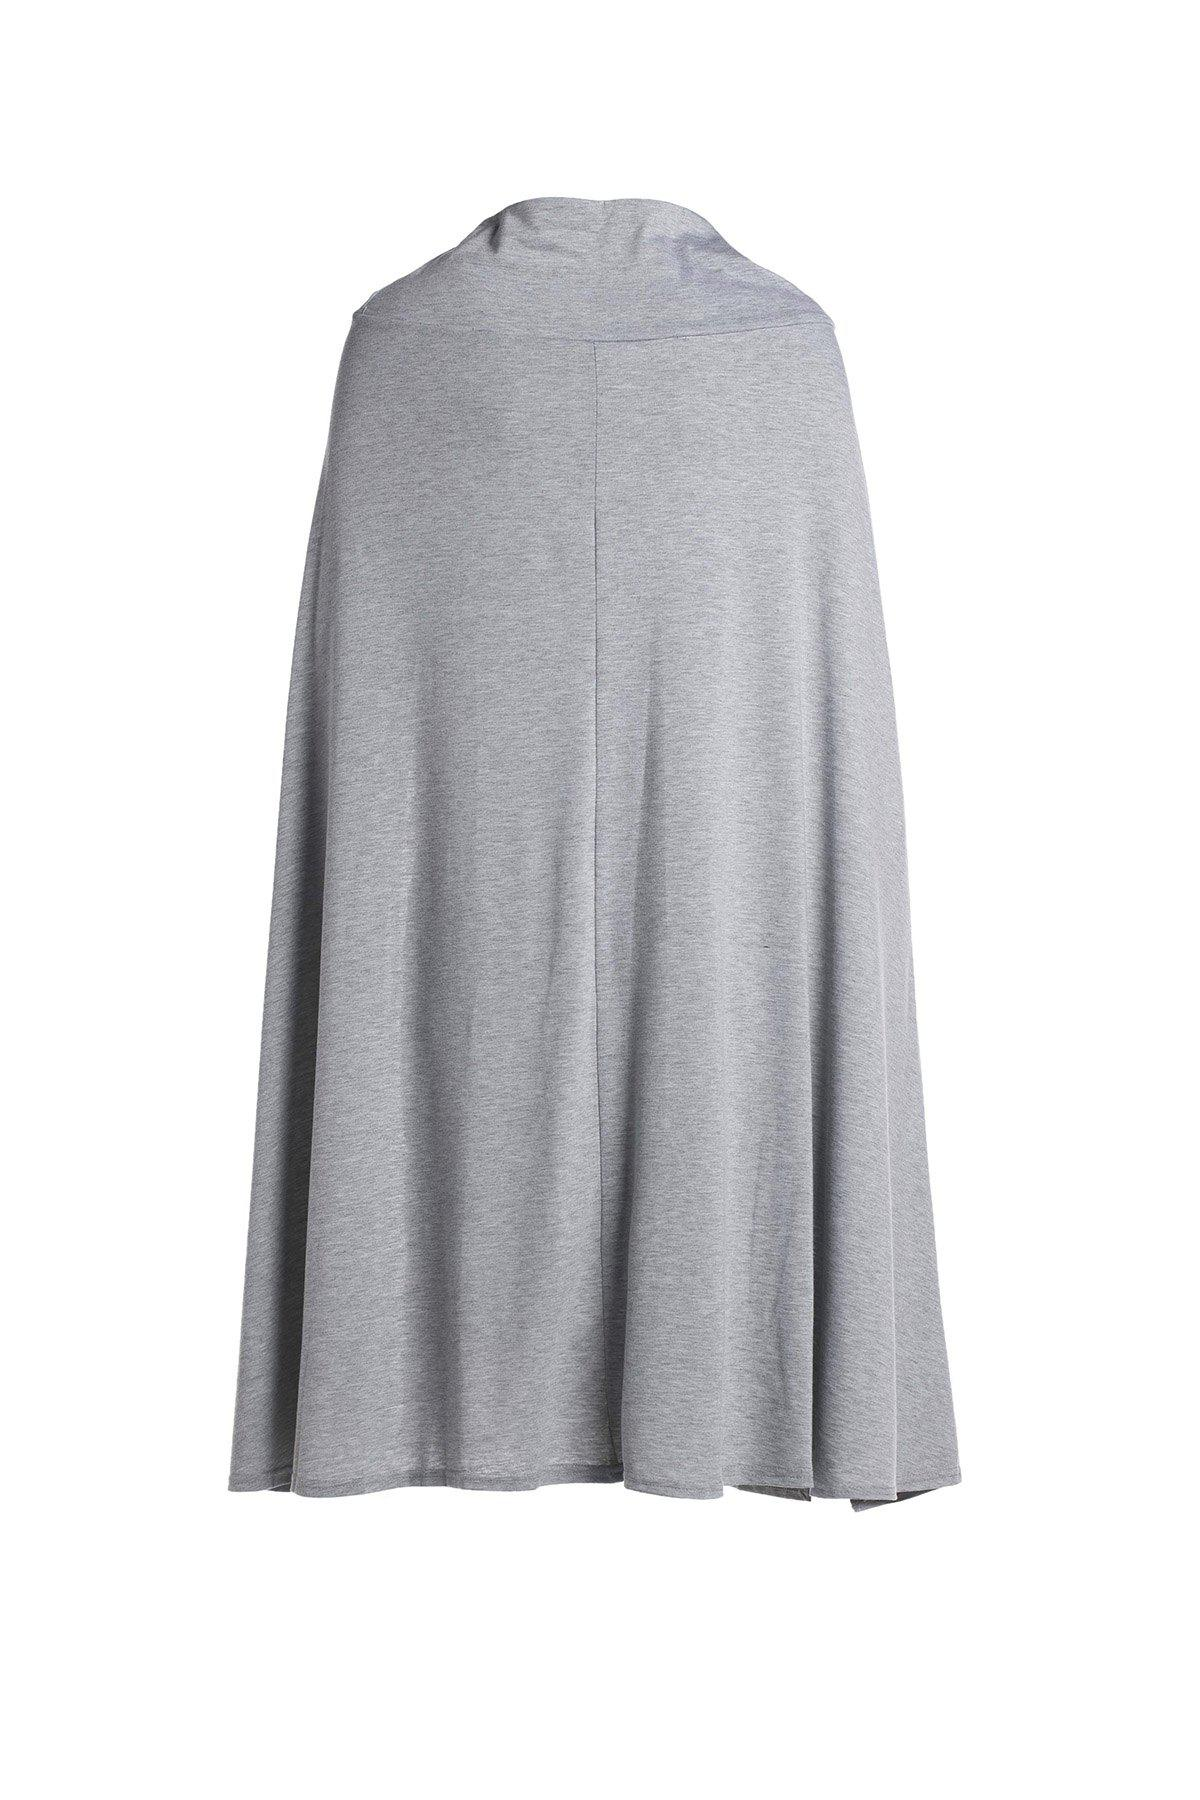 Casual High Slit Solid Color Women's Skirt - GRAY L